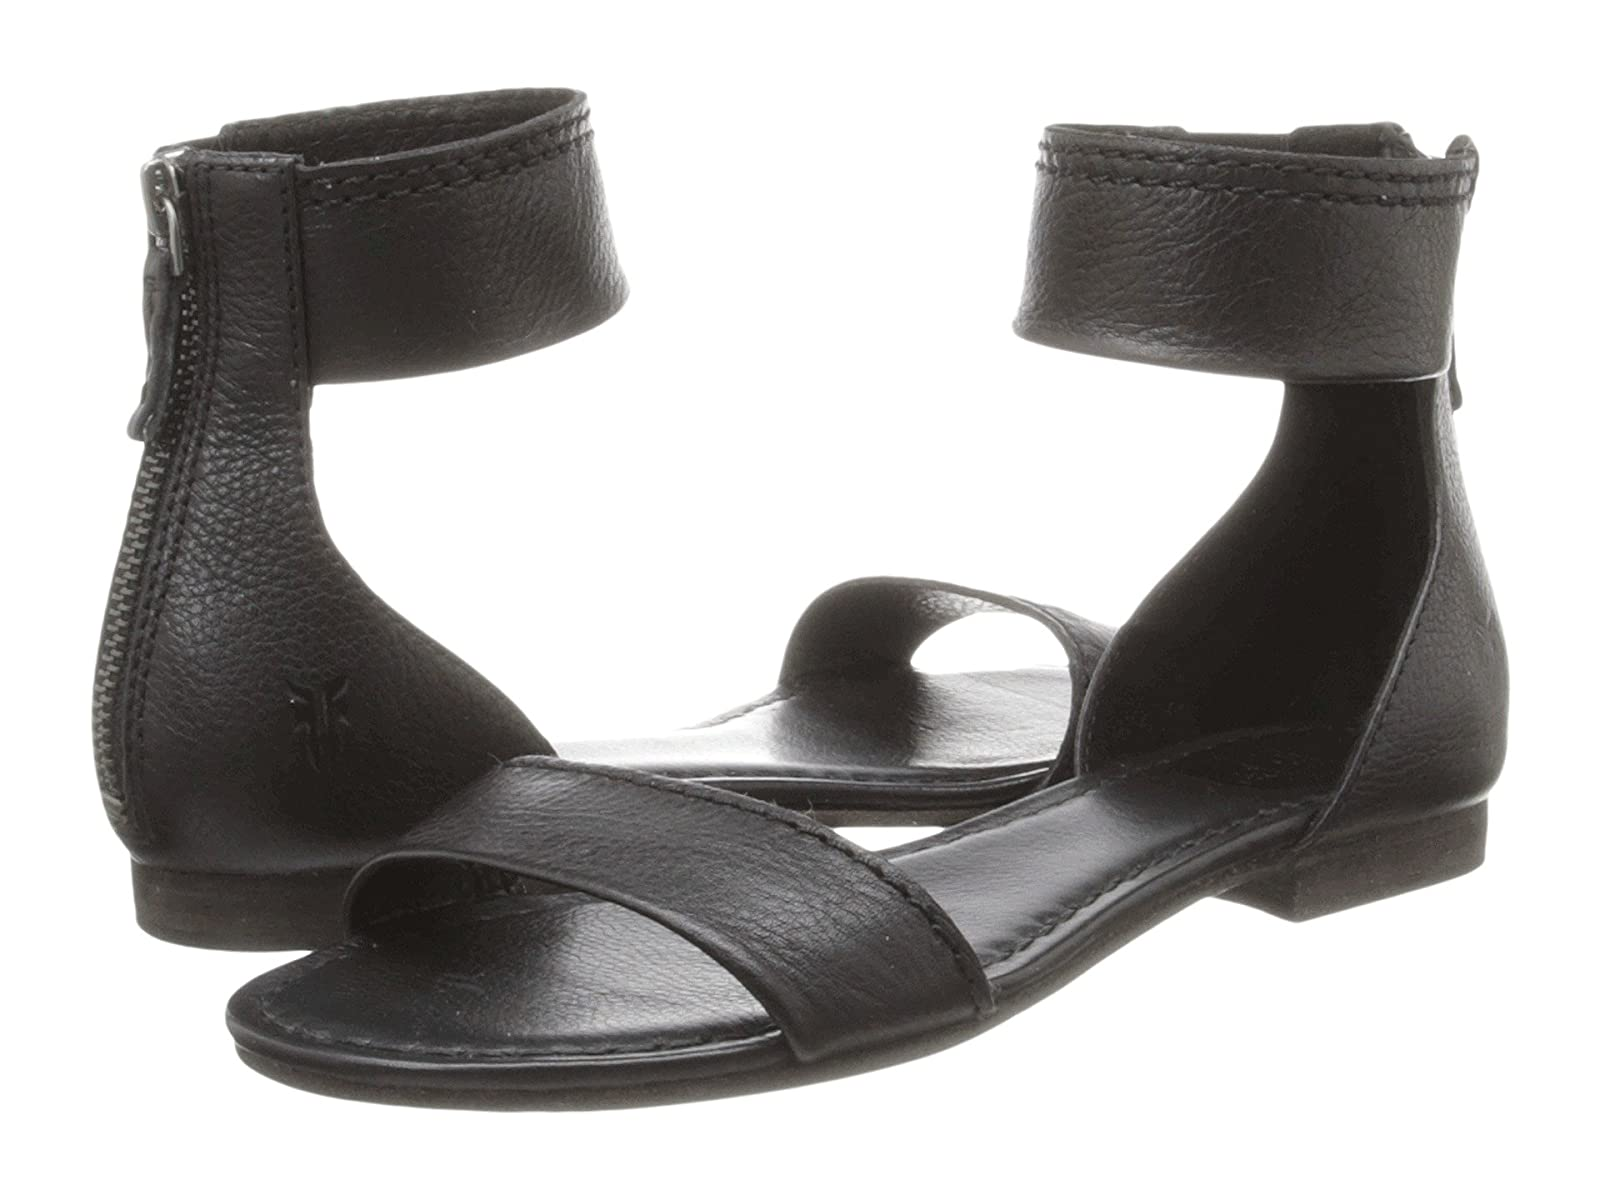 Frye Carson Ankle ZipCheap and distinctive eye-catching shoes